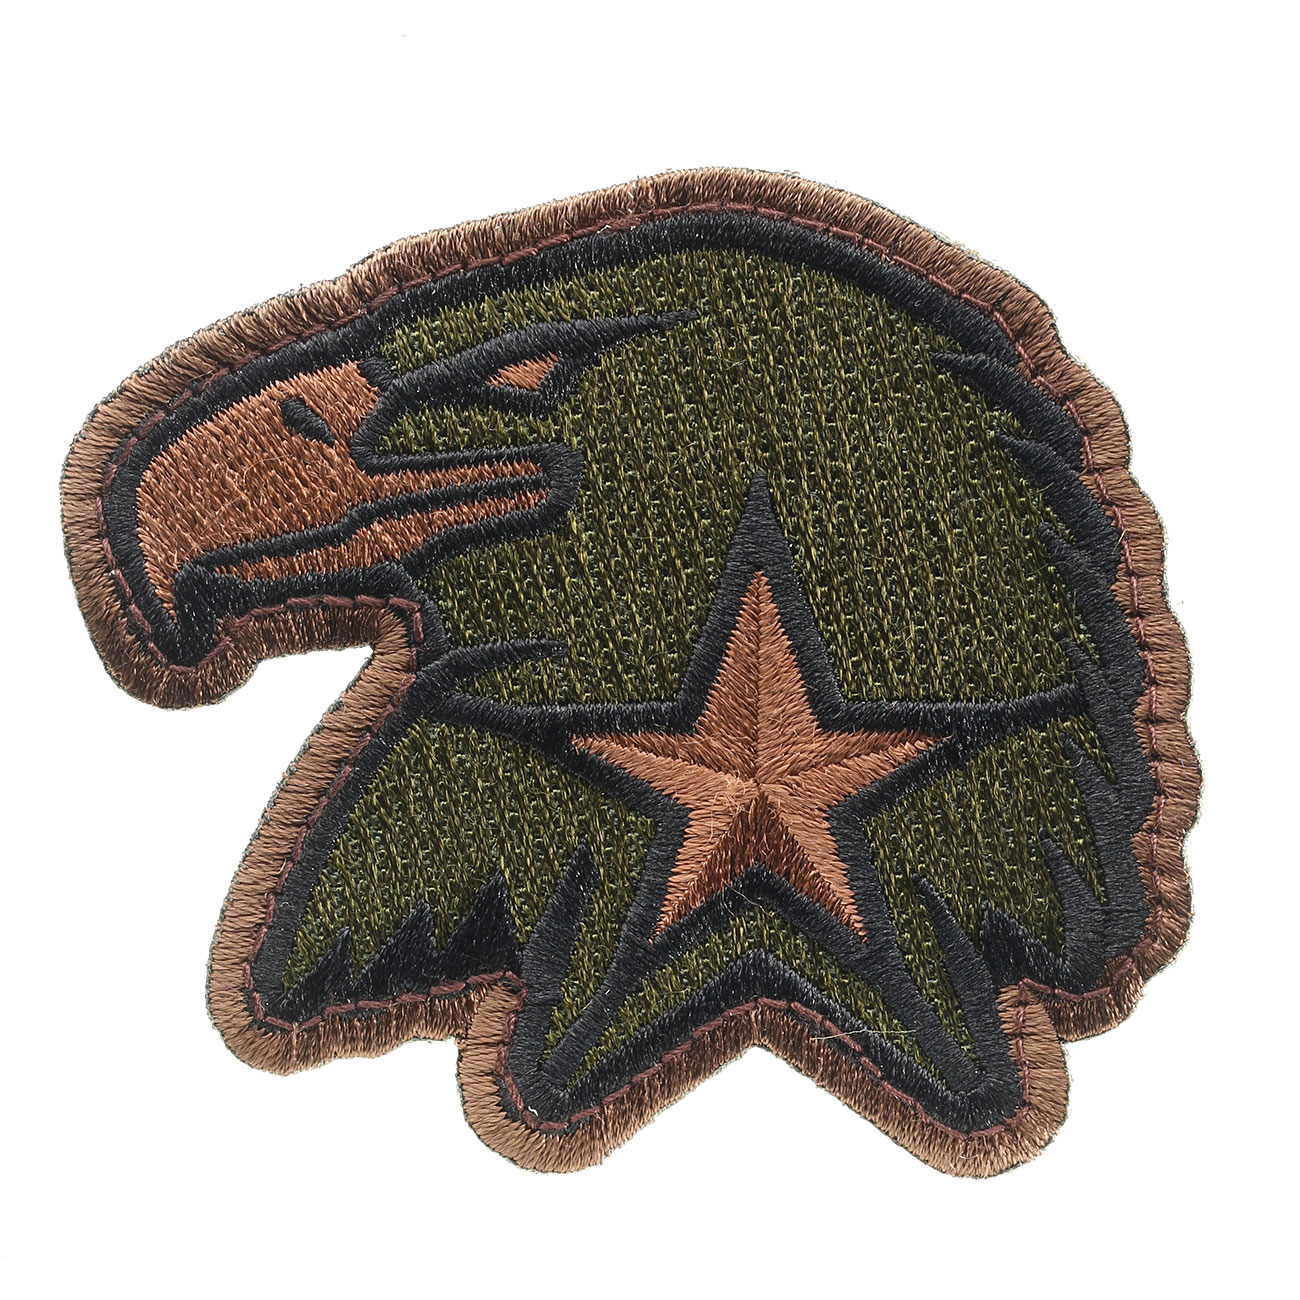 Mil-Spec Monkey Patch Eagle Star forest 0